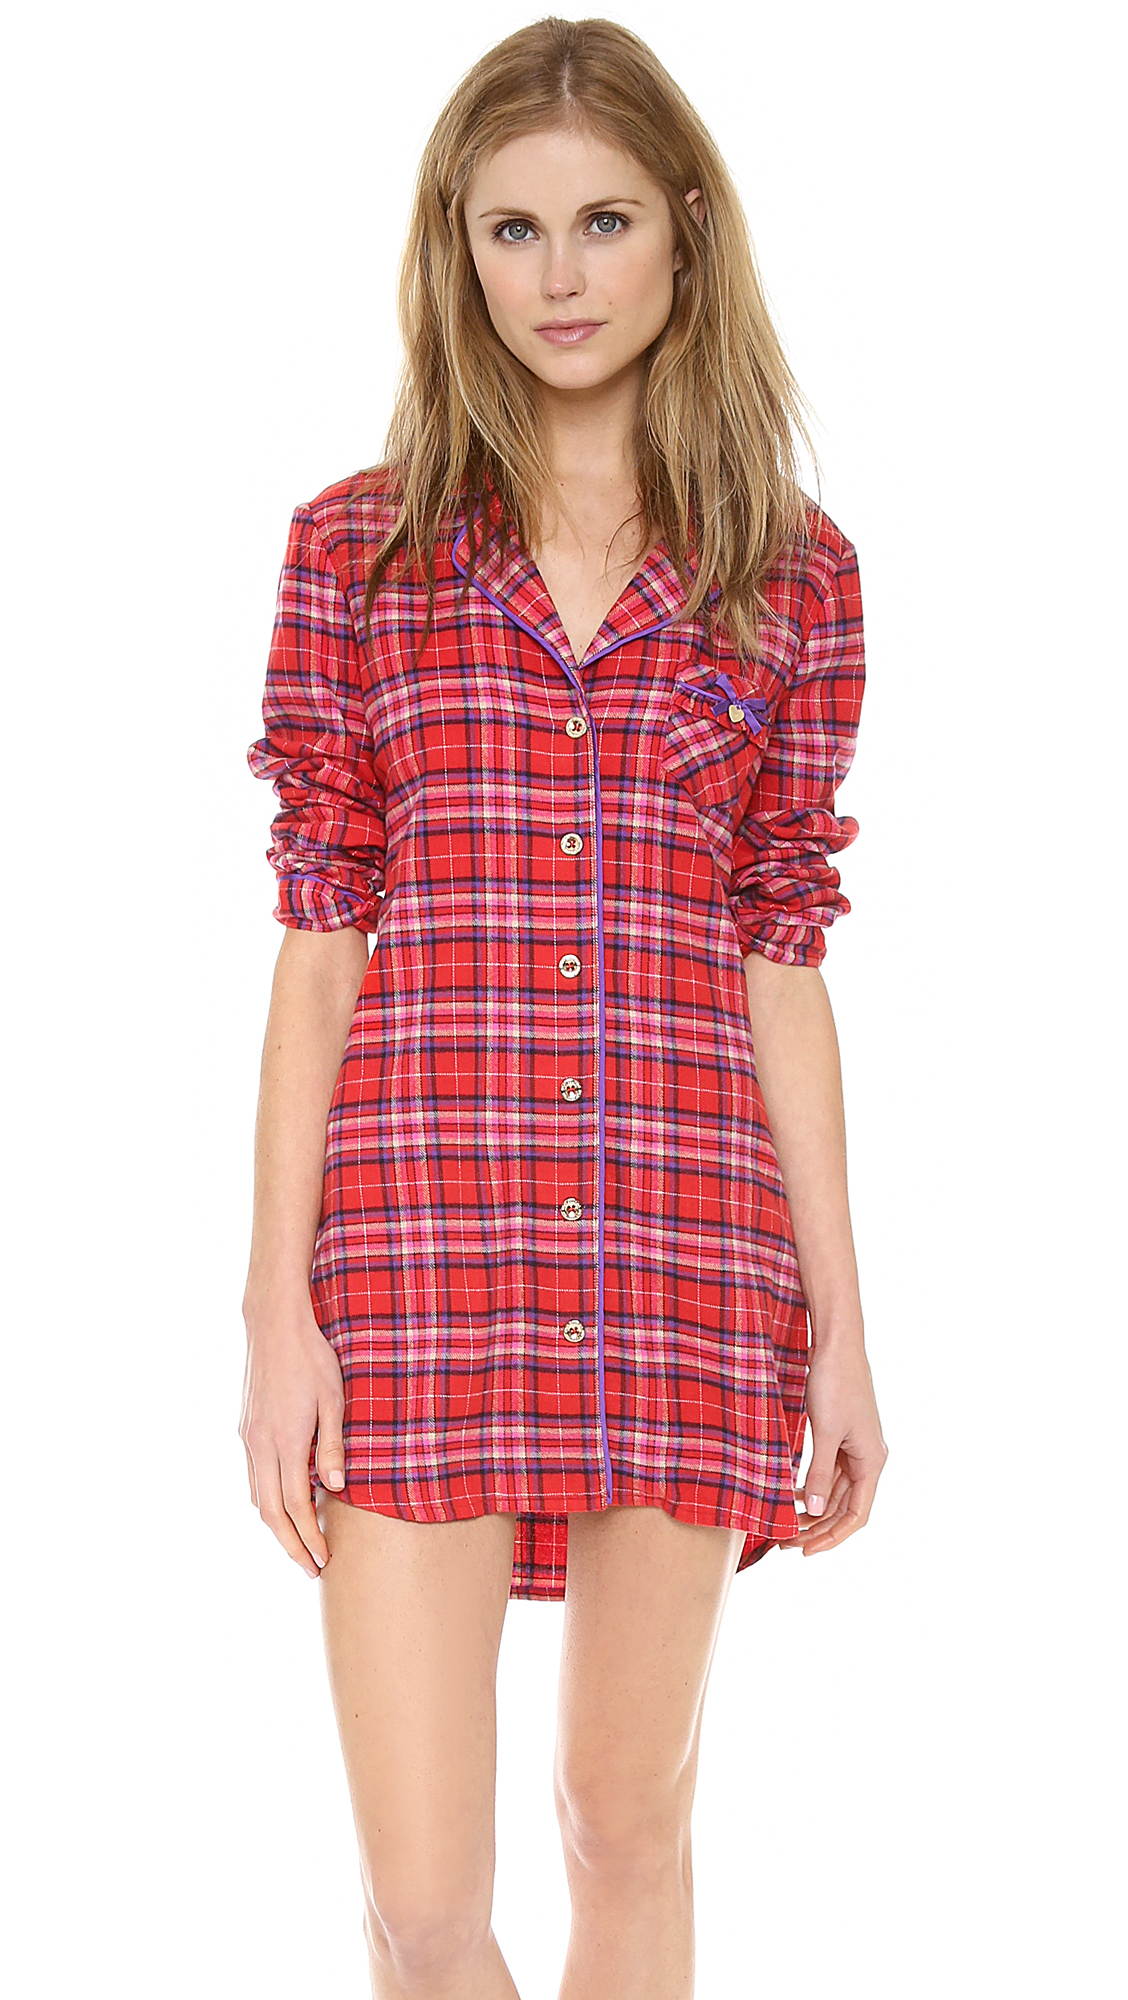 Lyst - Juicy Couture Flannel Nightshirt in Red